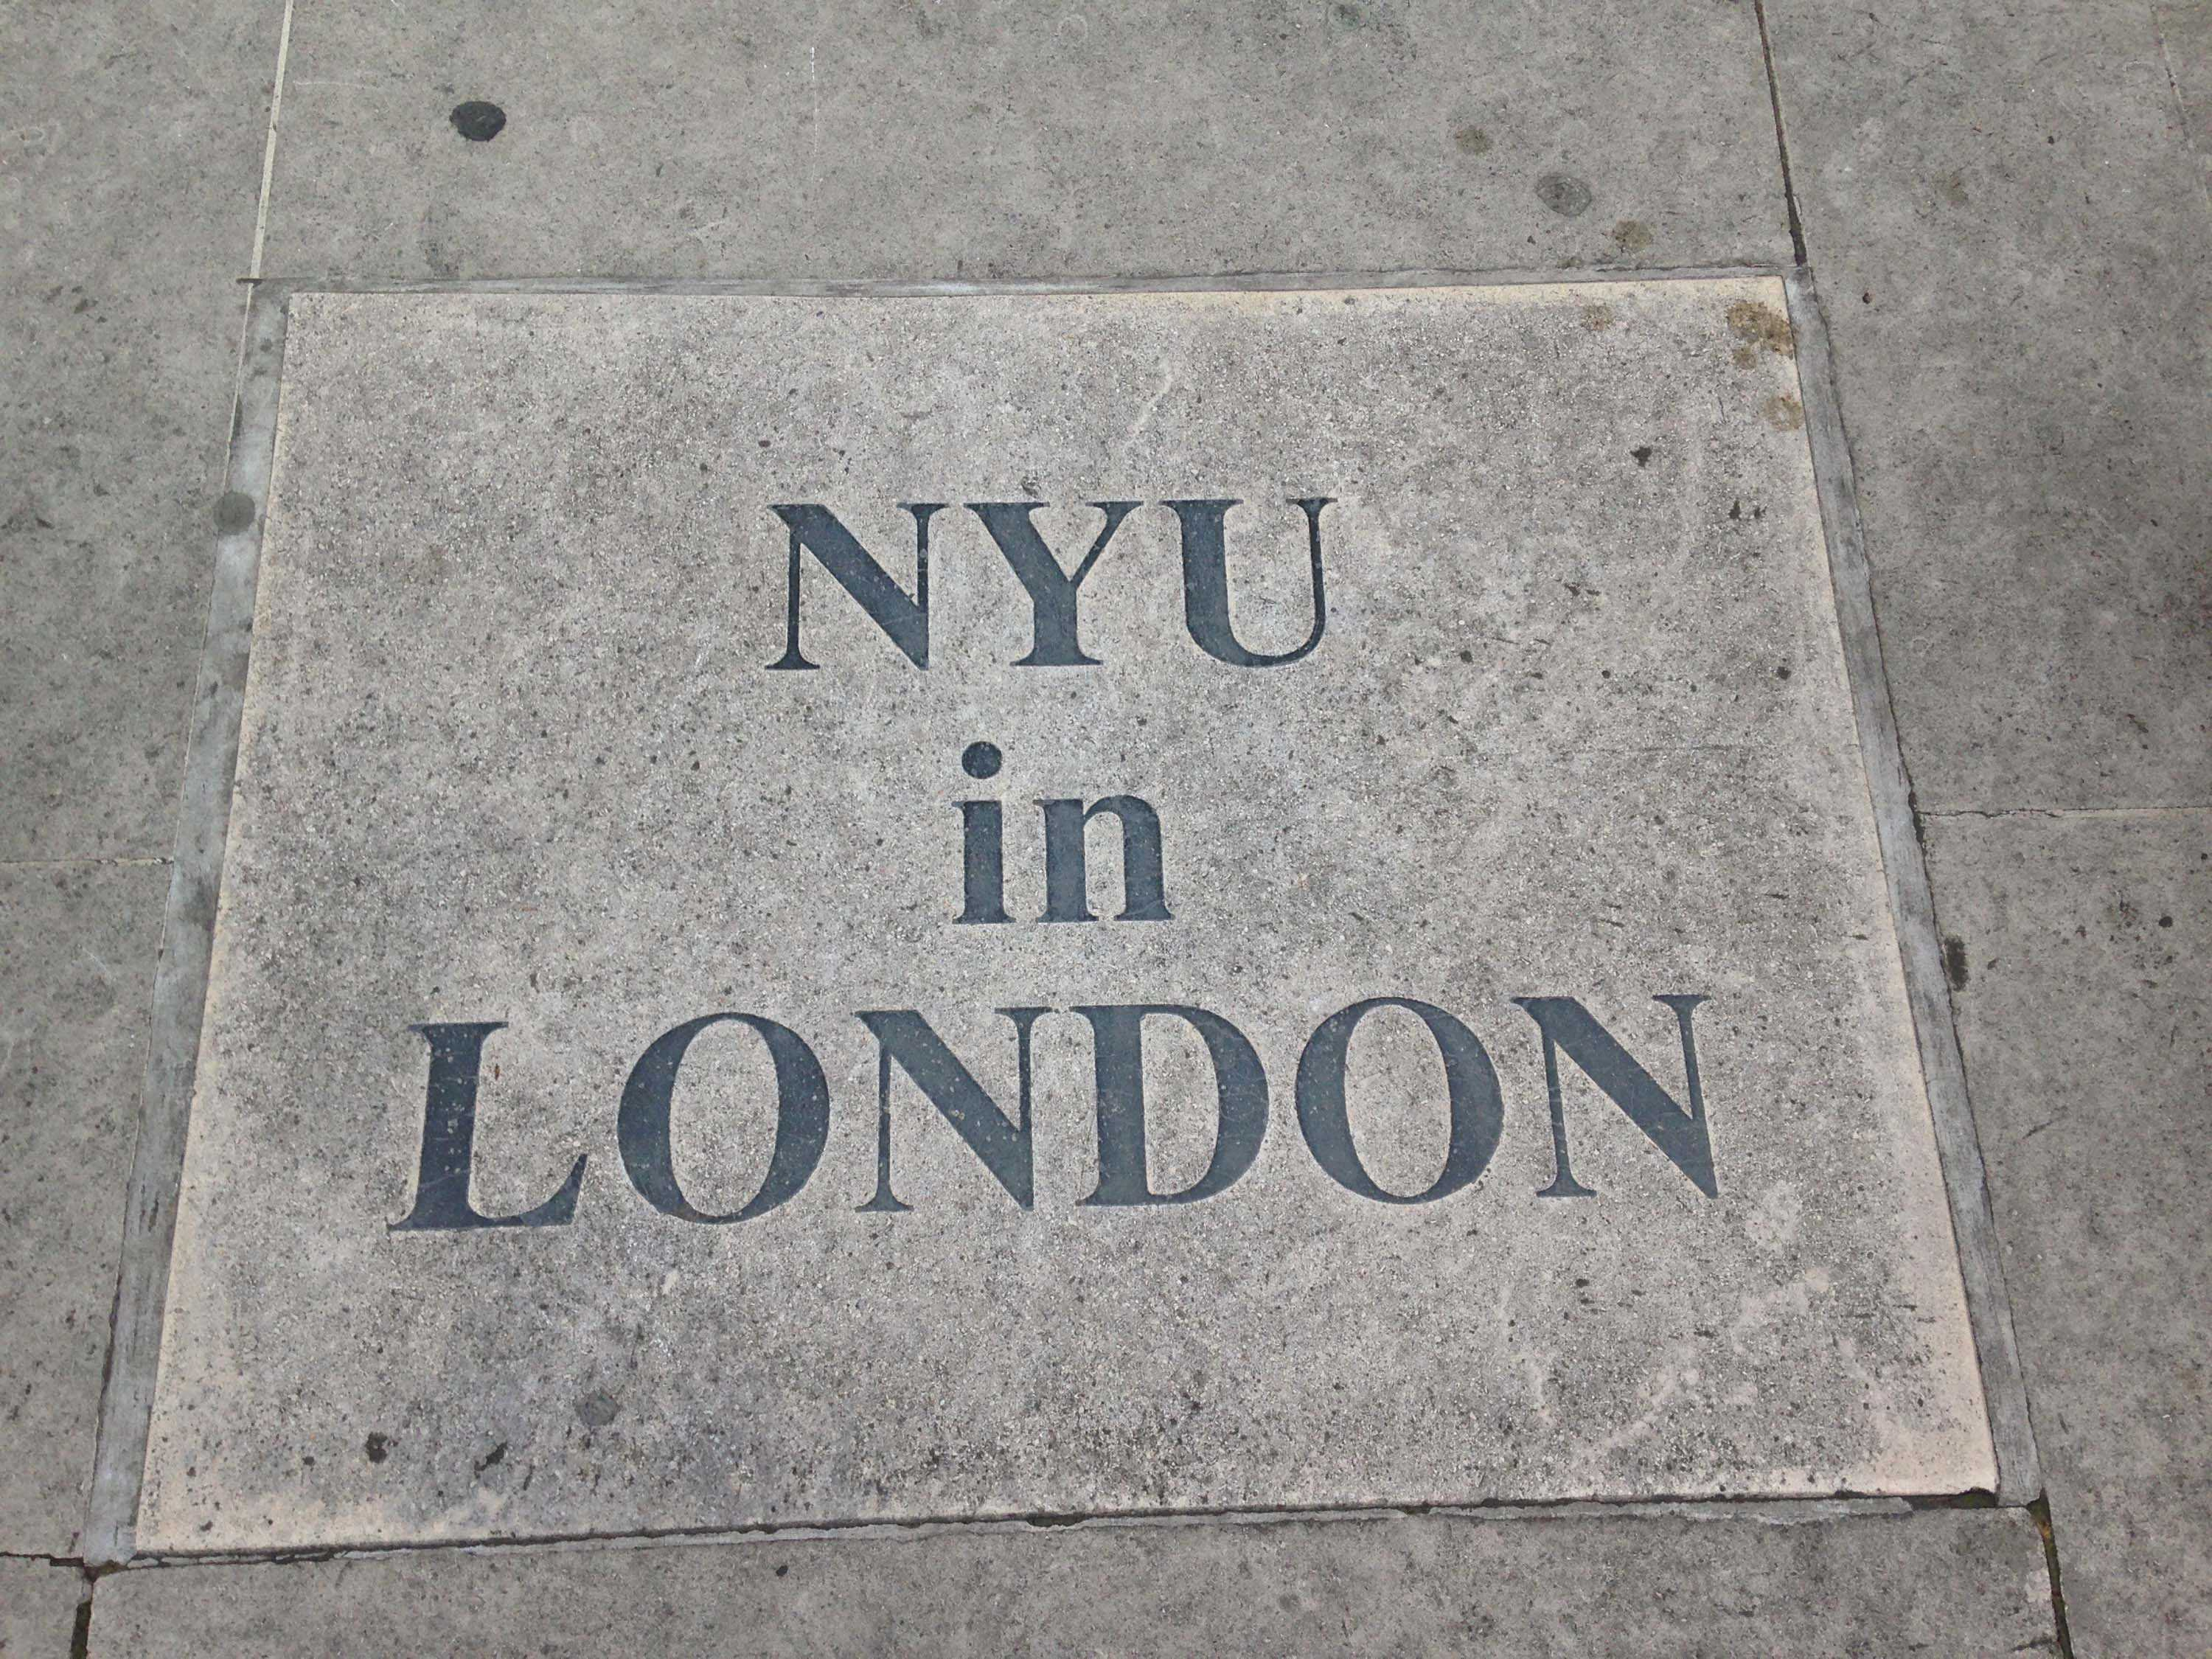 A new scholarship was created so that financial strain would not be a burden for those who want to study away at NYU London. It is named after NYU Law professor and Director of NYU London Gary Slapper, who passed away suddenly last December.